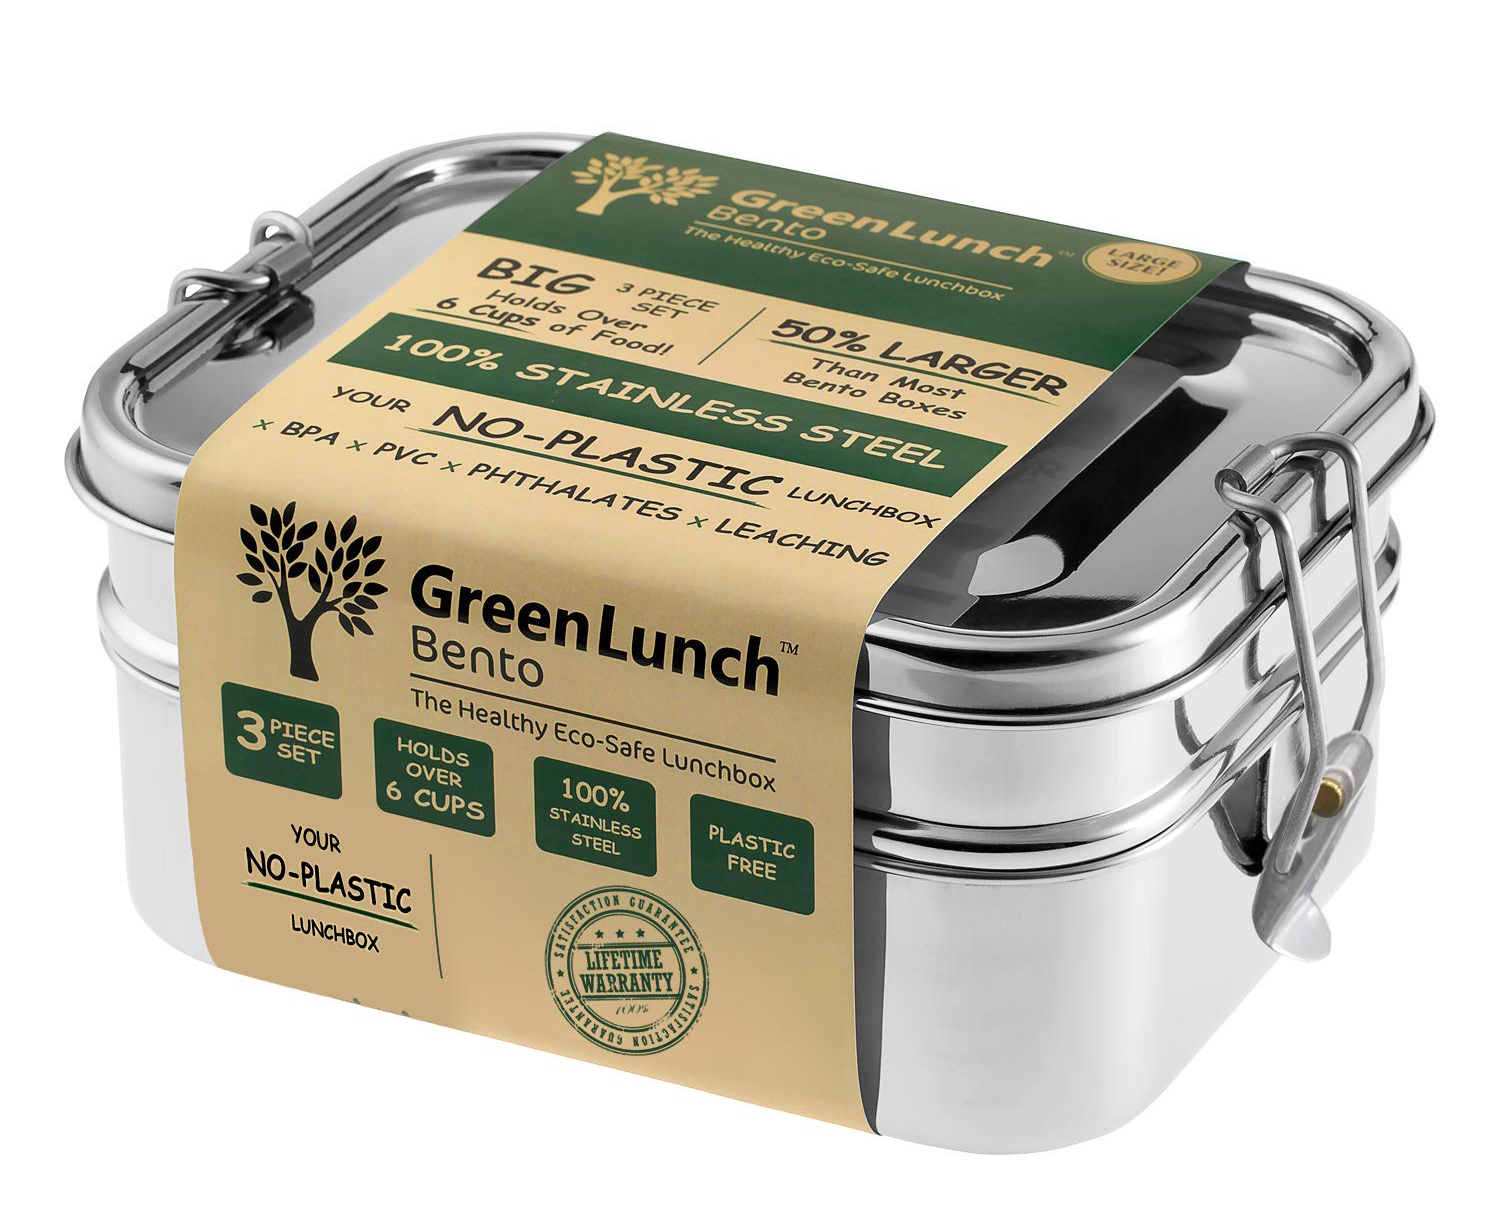 The 10 Best Lunch Boxes on Amazon, According to Thousands of